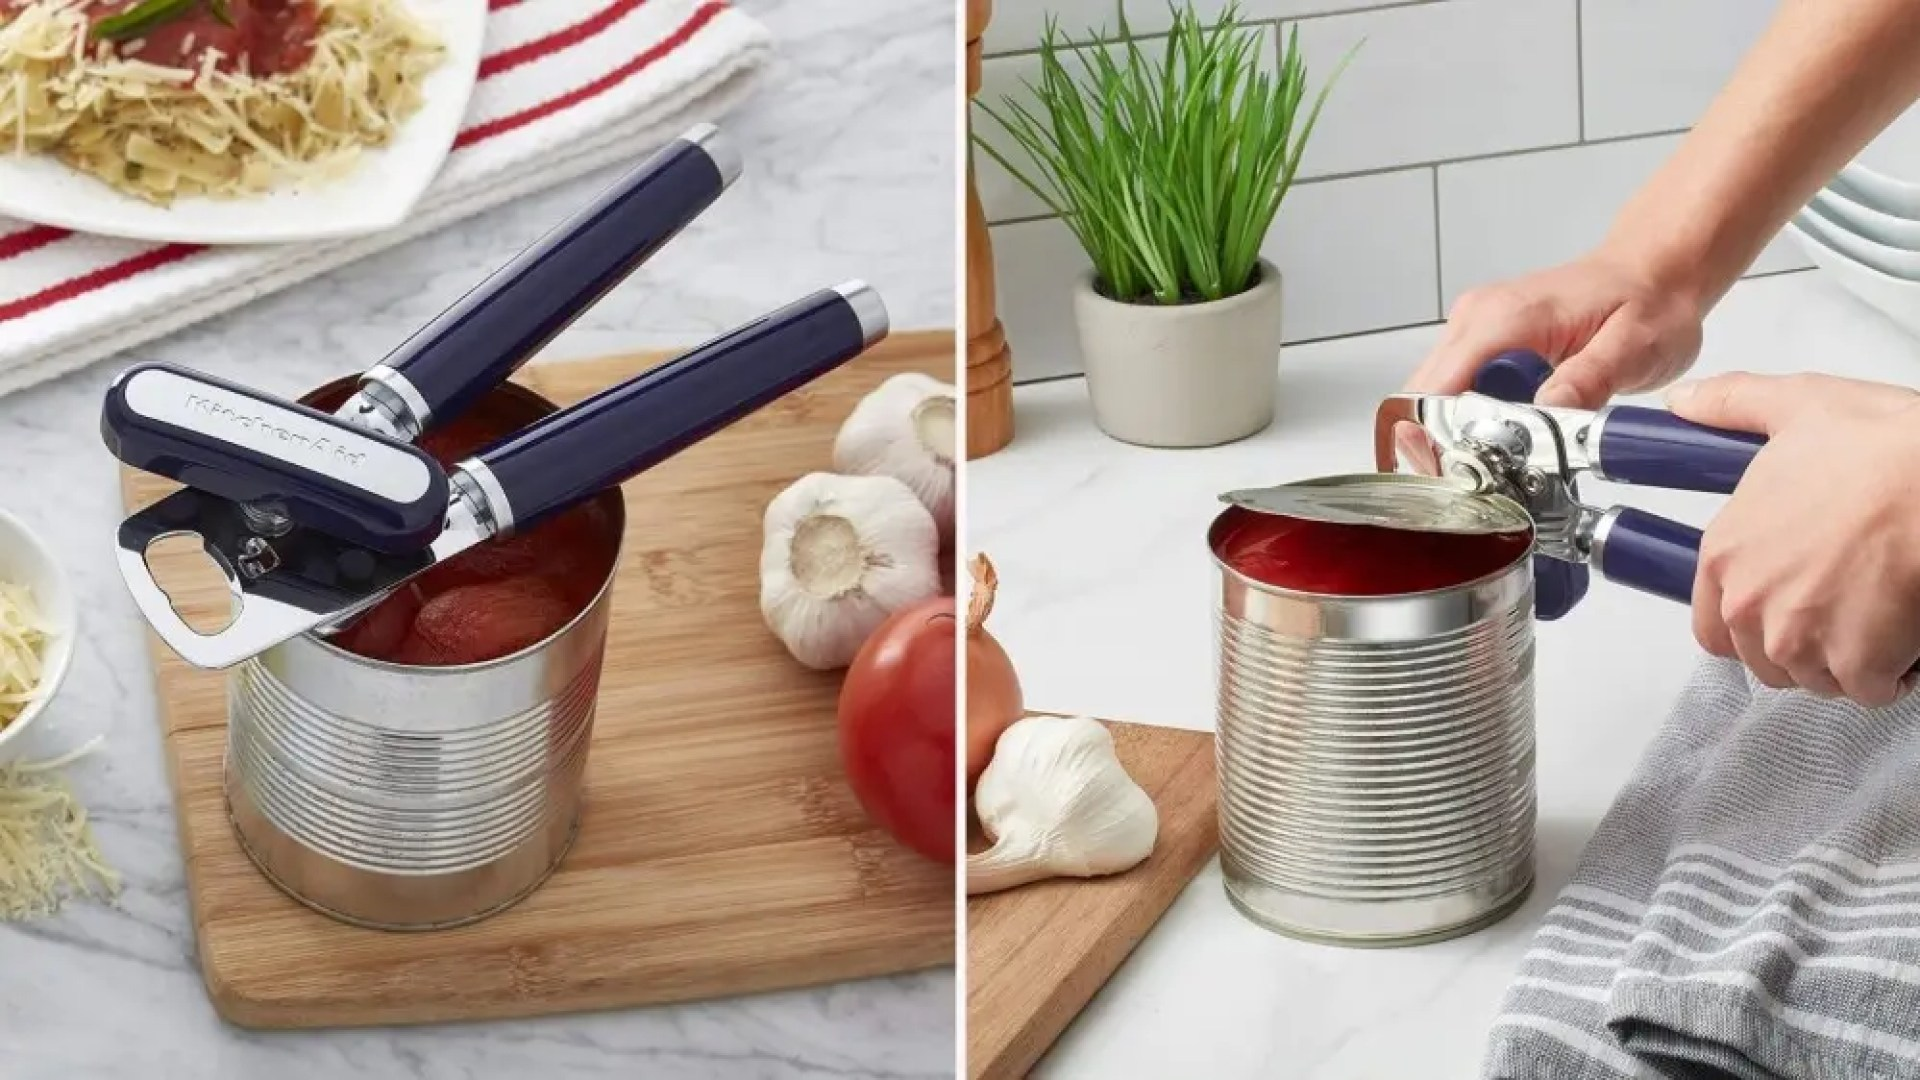 Two side by side images; the lef tis of a KitchenAid Can opening placed directly on an open can of tomatoes and the right image is of a woman opening a can with the same can opener.